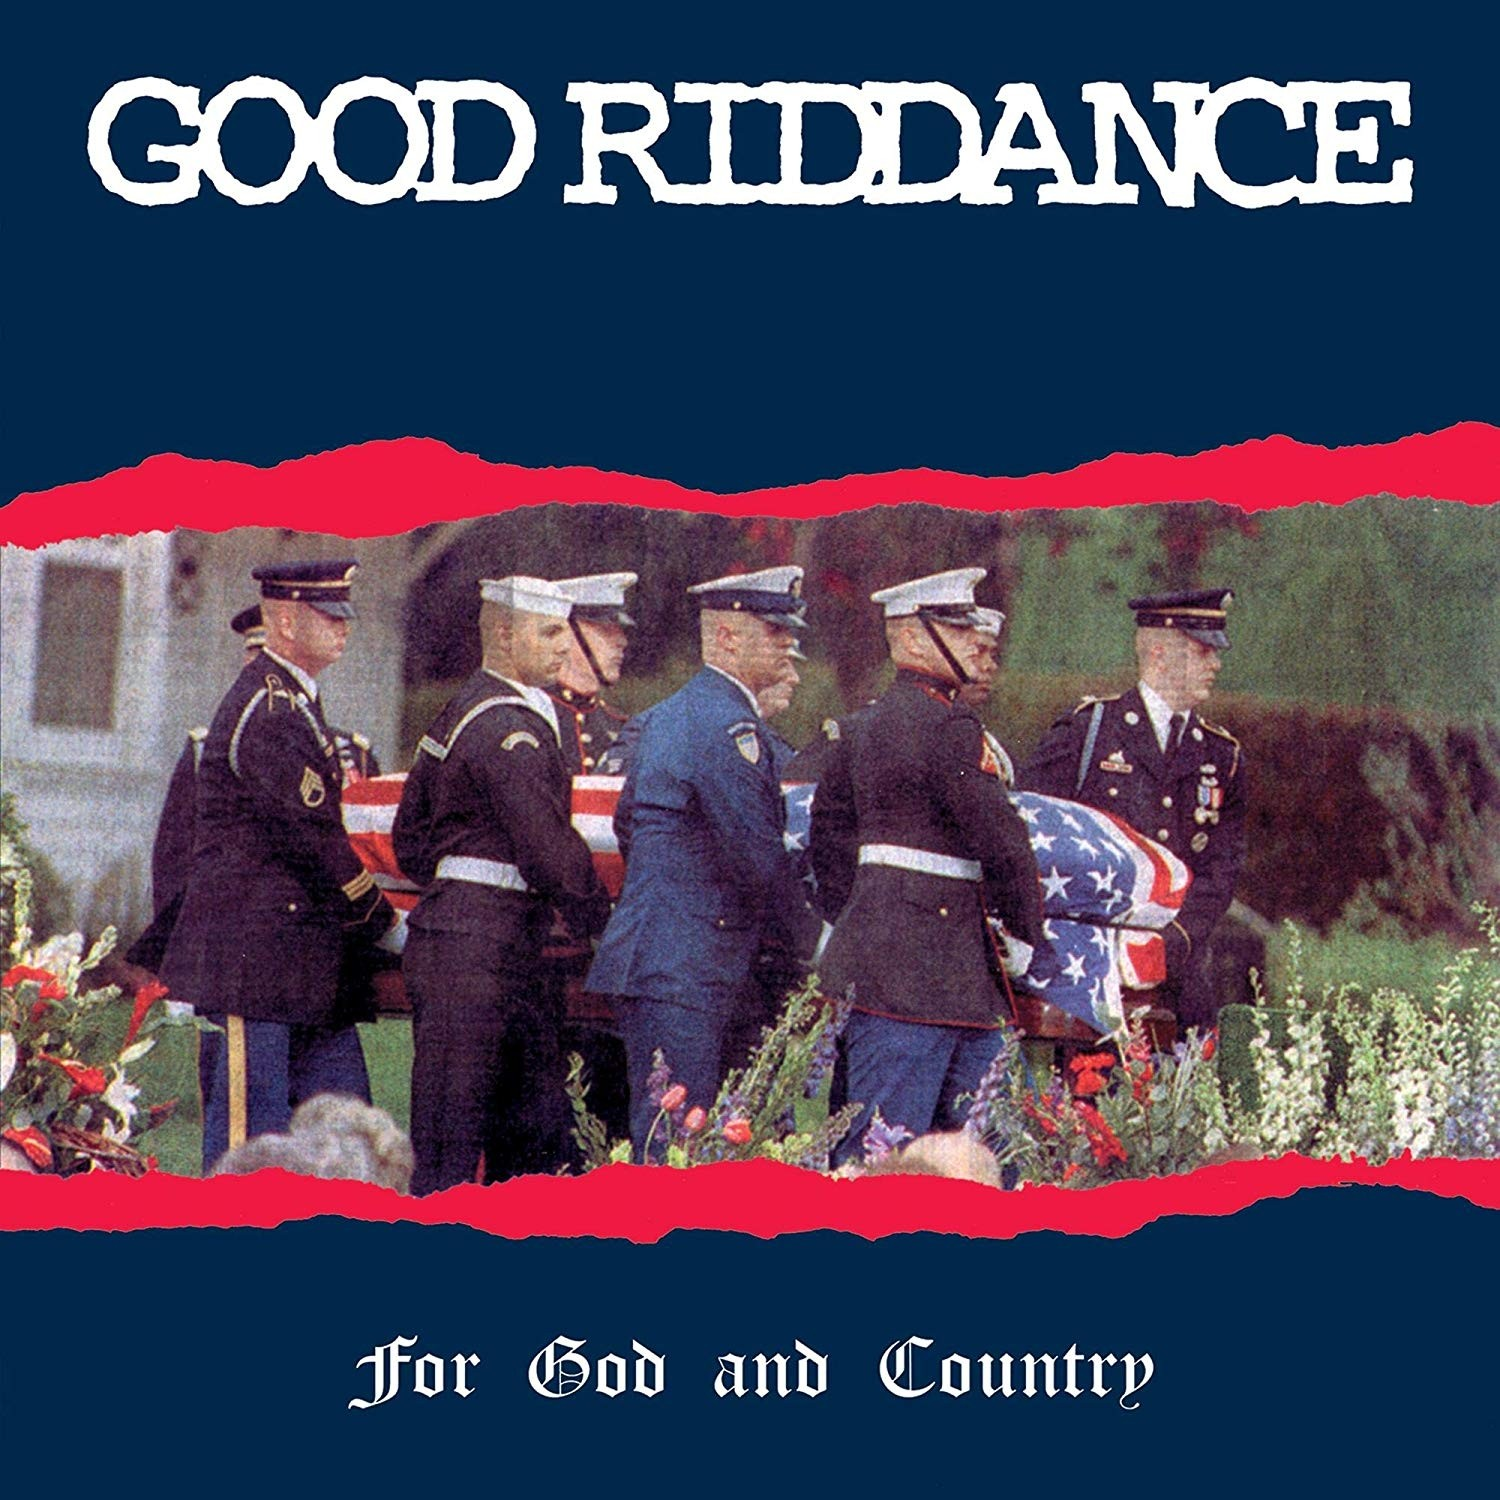 Good Riddance - For God And Country Vinyl LP